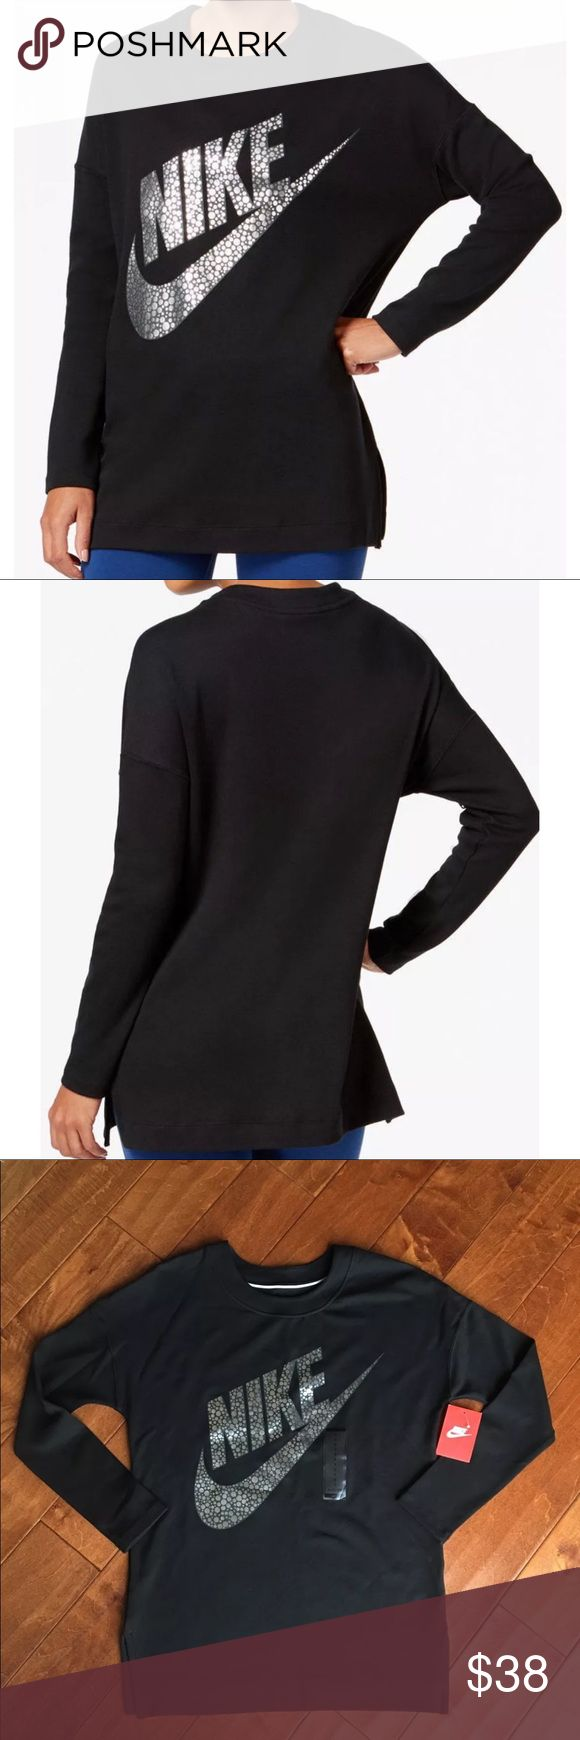 NEW Nike Black Metallic Long Sleeve Top SZ Small New with tags Nike Women's Sportswear Black Metallic Long Sleeve Top (805247) Small  Soft and thick and like sweatshirt material.  The Nike Sportswear Women's Long Sleeve Top features an elongated silhouette for comfortable coverage.  Benefits Elongated silhouette for relaxed coverage Dropped shoulders for comfort Side vents for a flattering fit Product Details Fabric: 97% cotton/3% spandex Machine wash Imported Measurements laying flat Armpit…